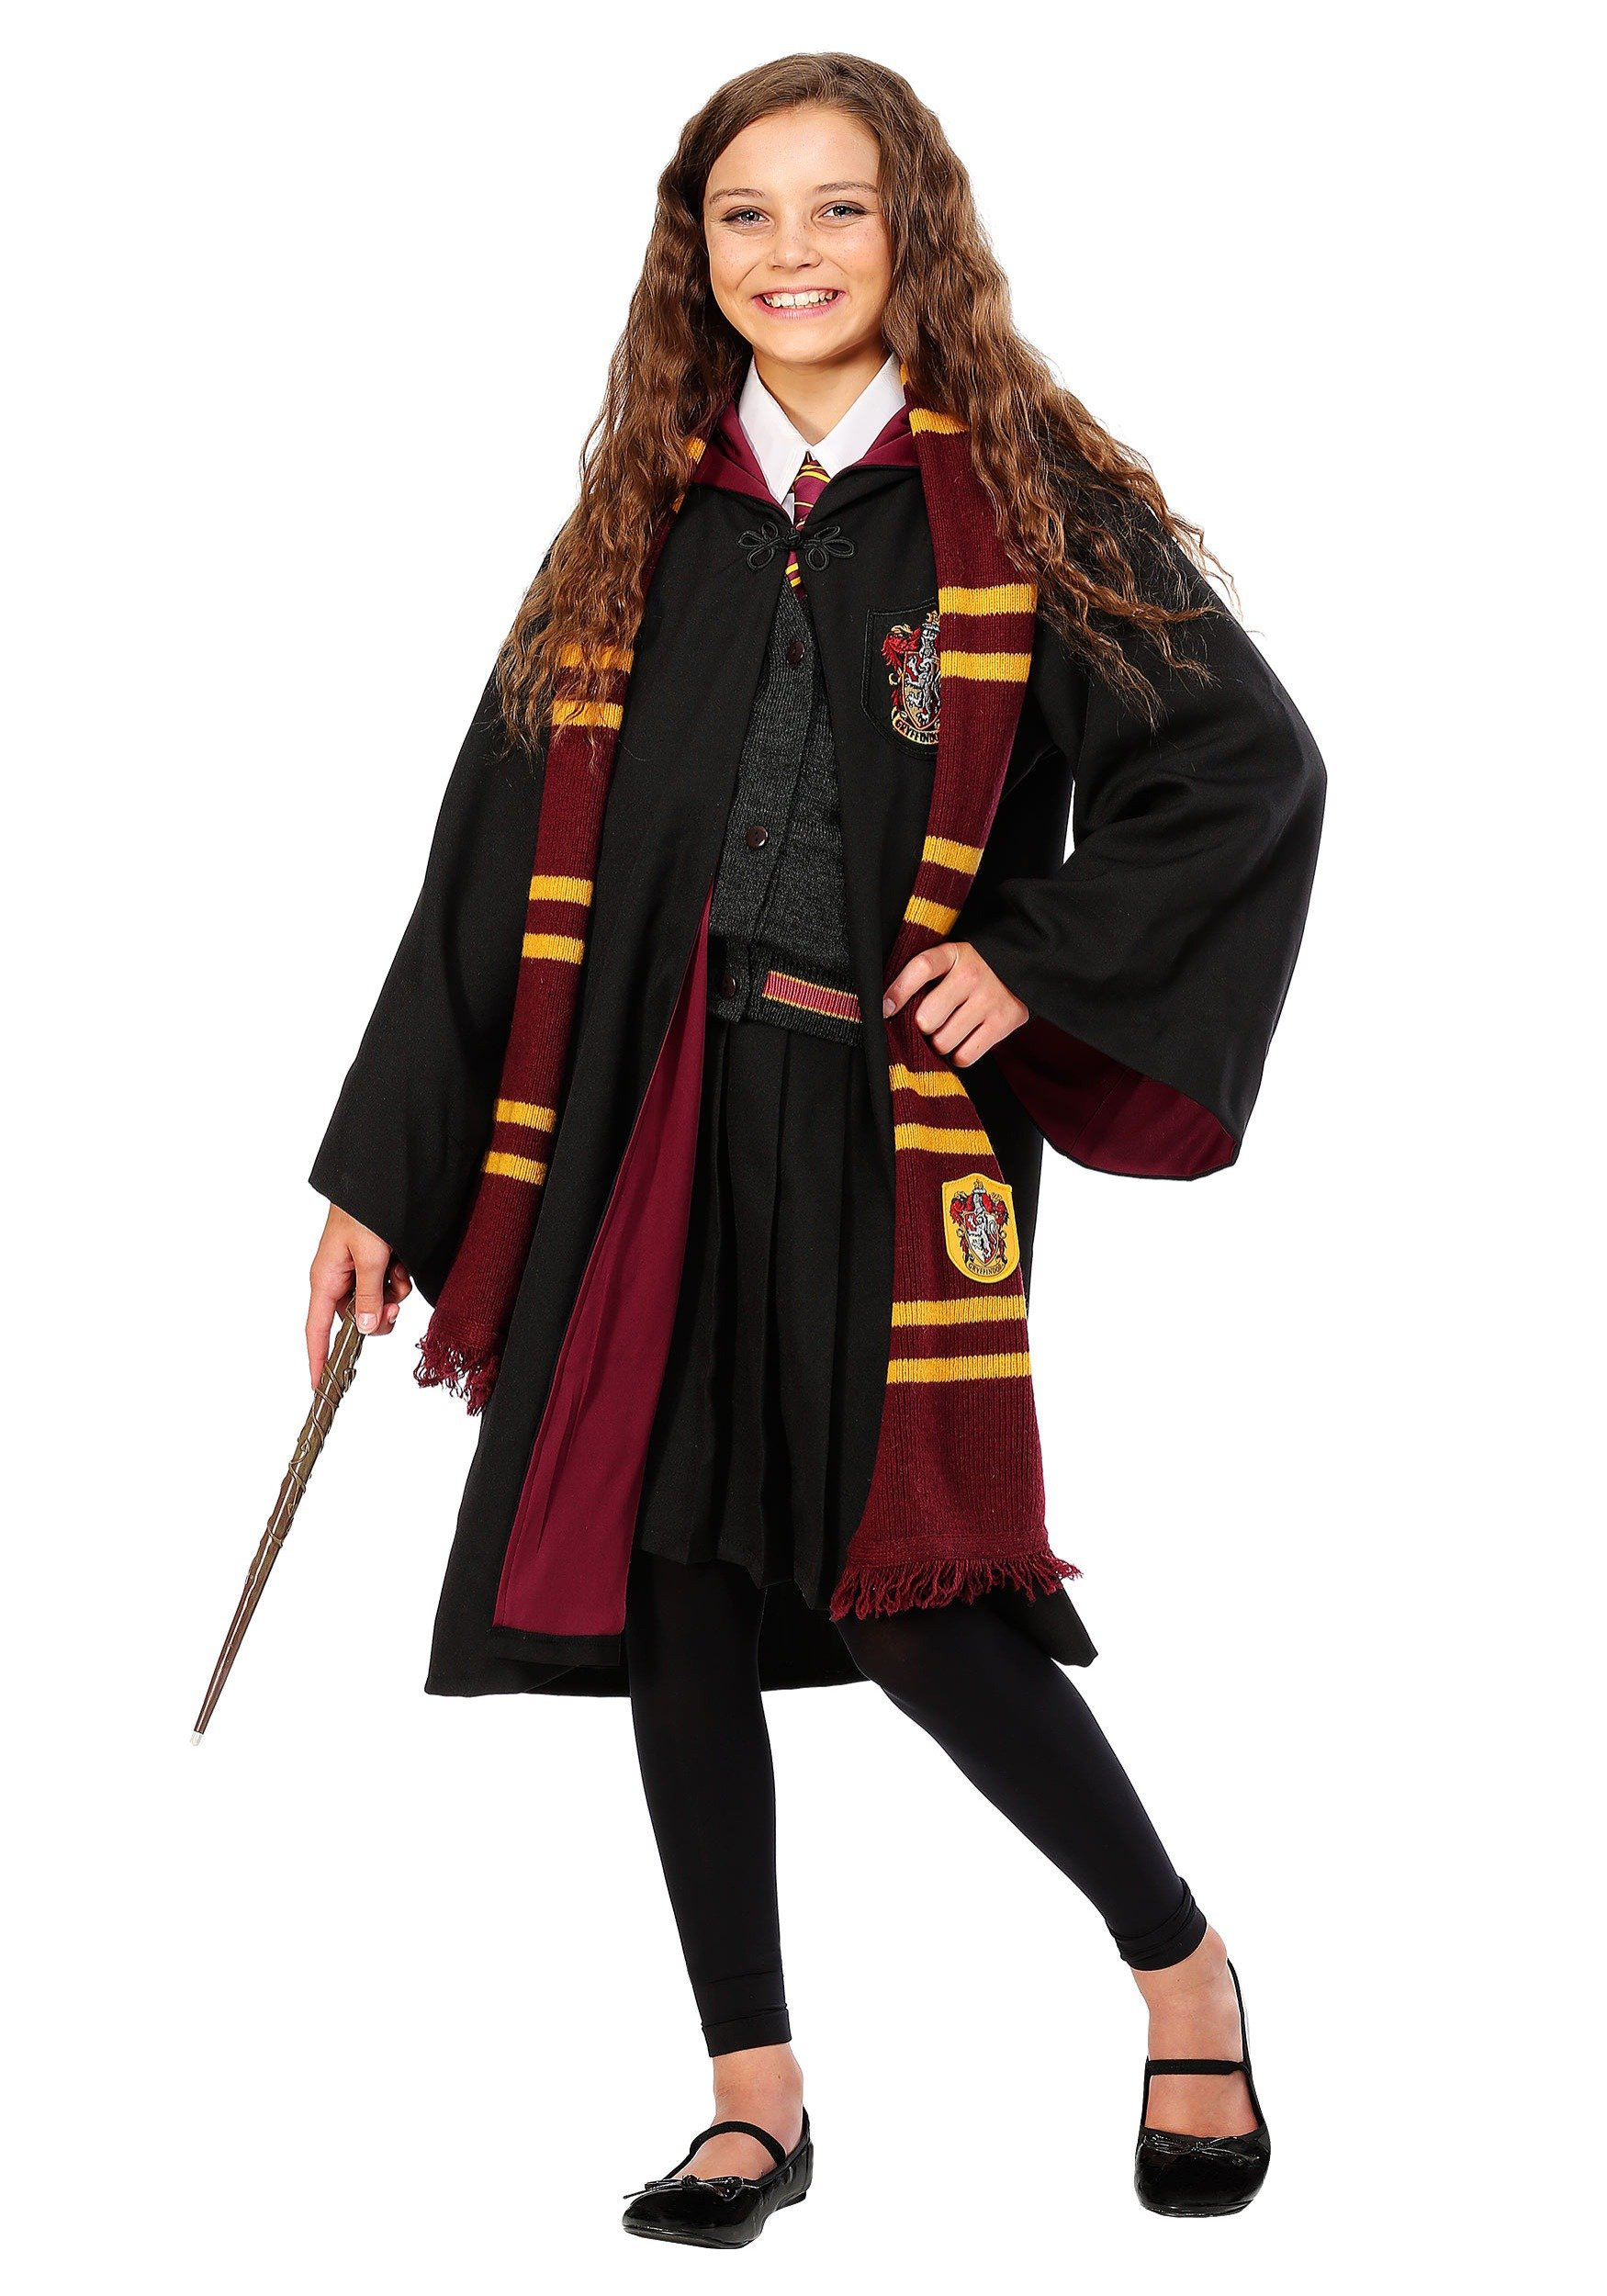 Girls Deluxe Hermione Granger Uniform and Robe Costume - XS by Charades (Image #2)